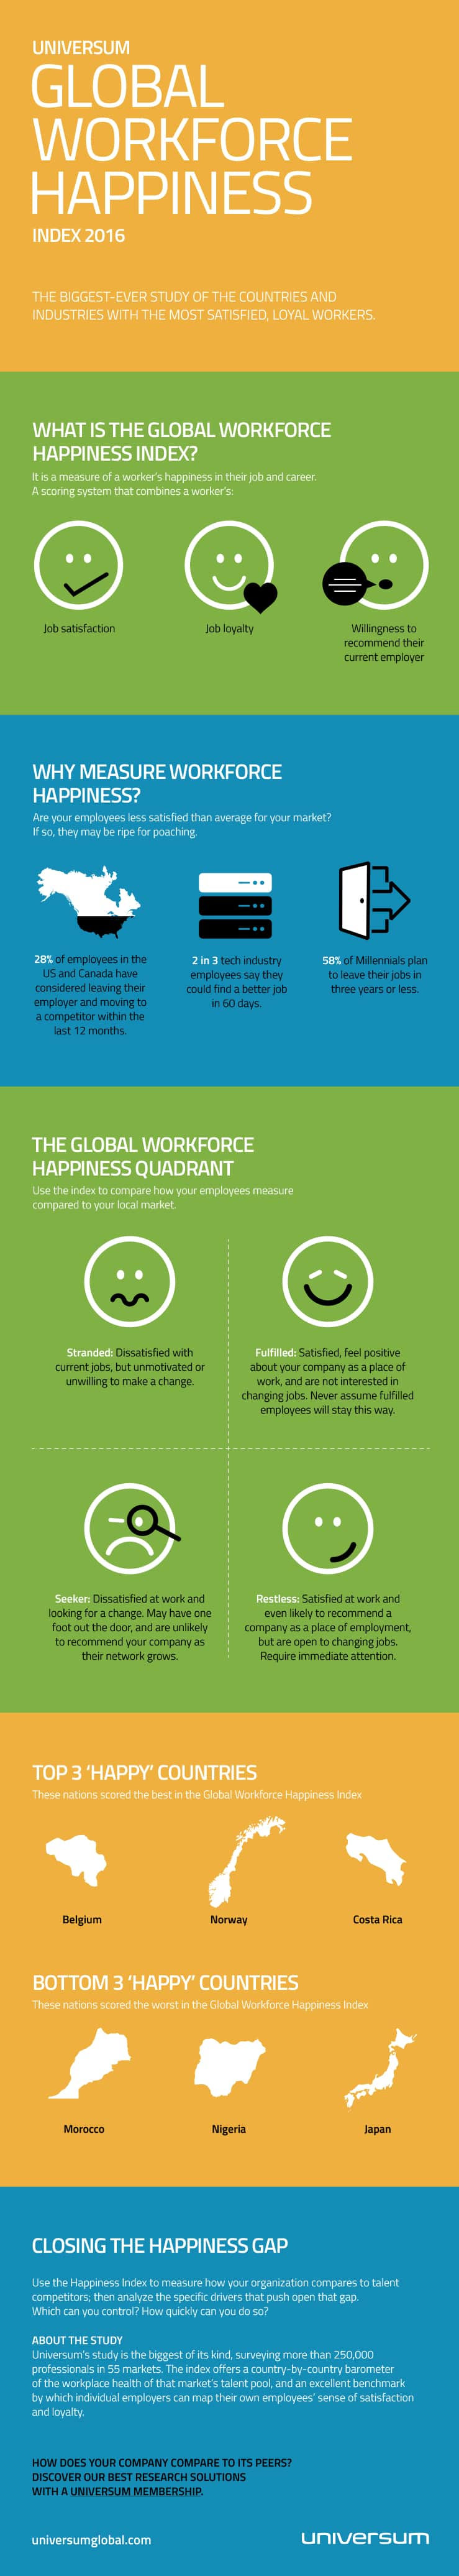 how happy are your workforce really?